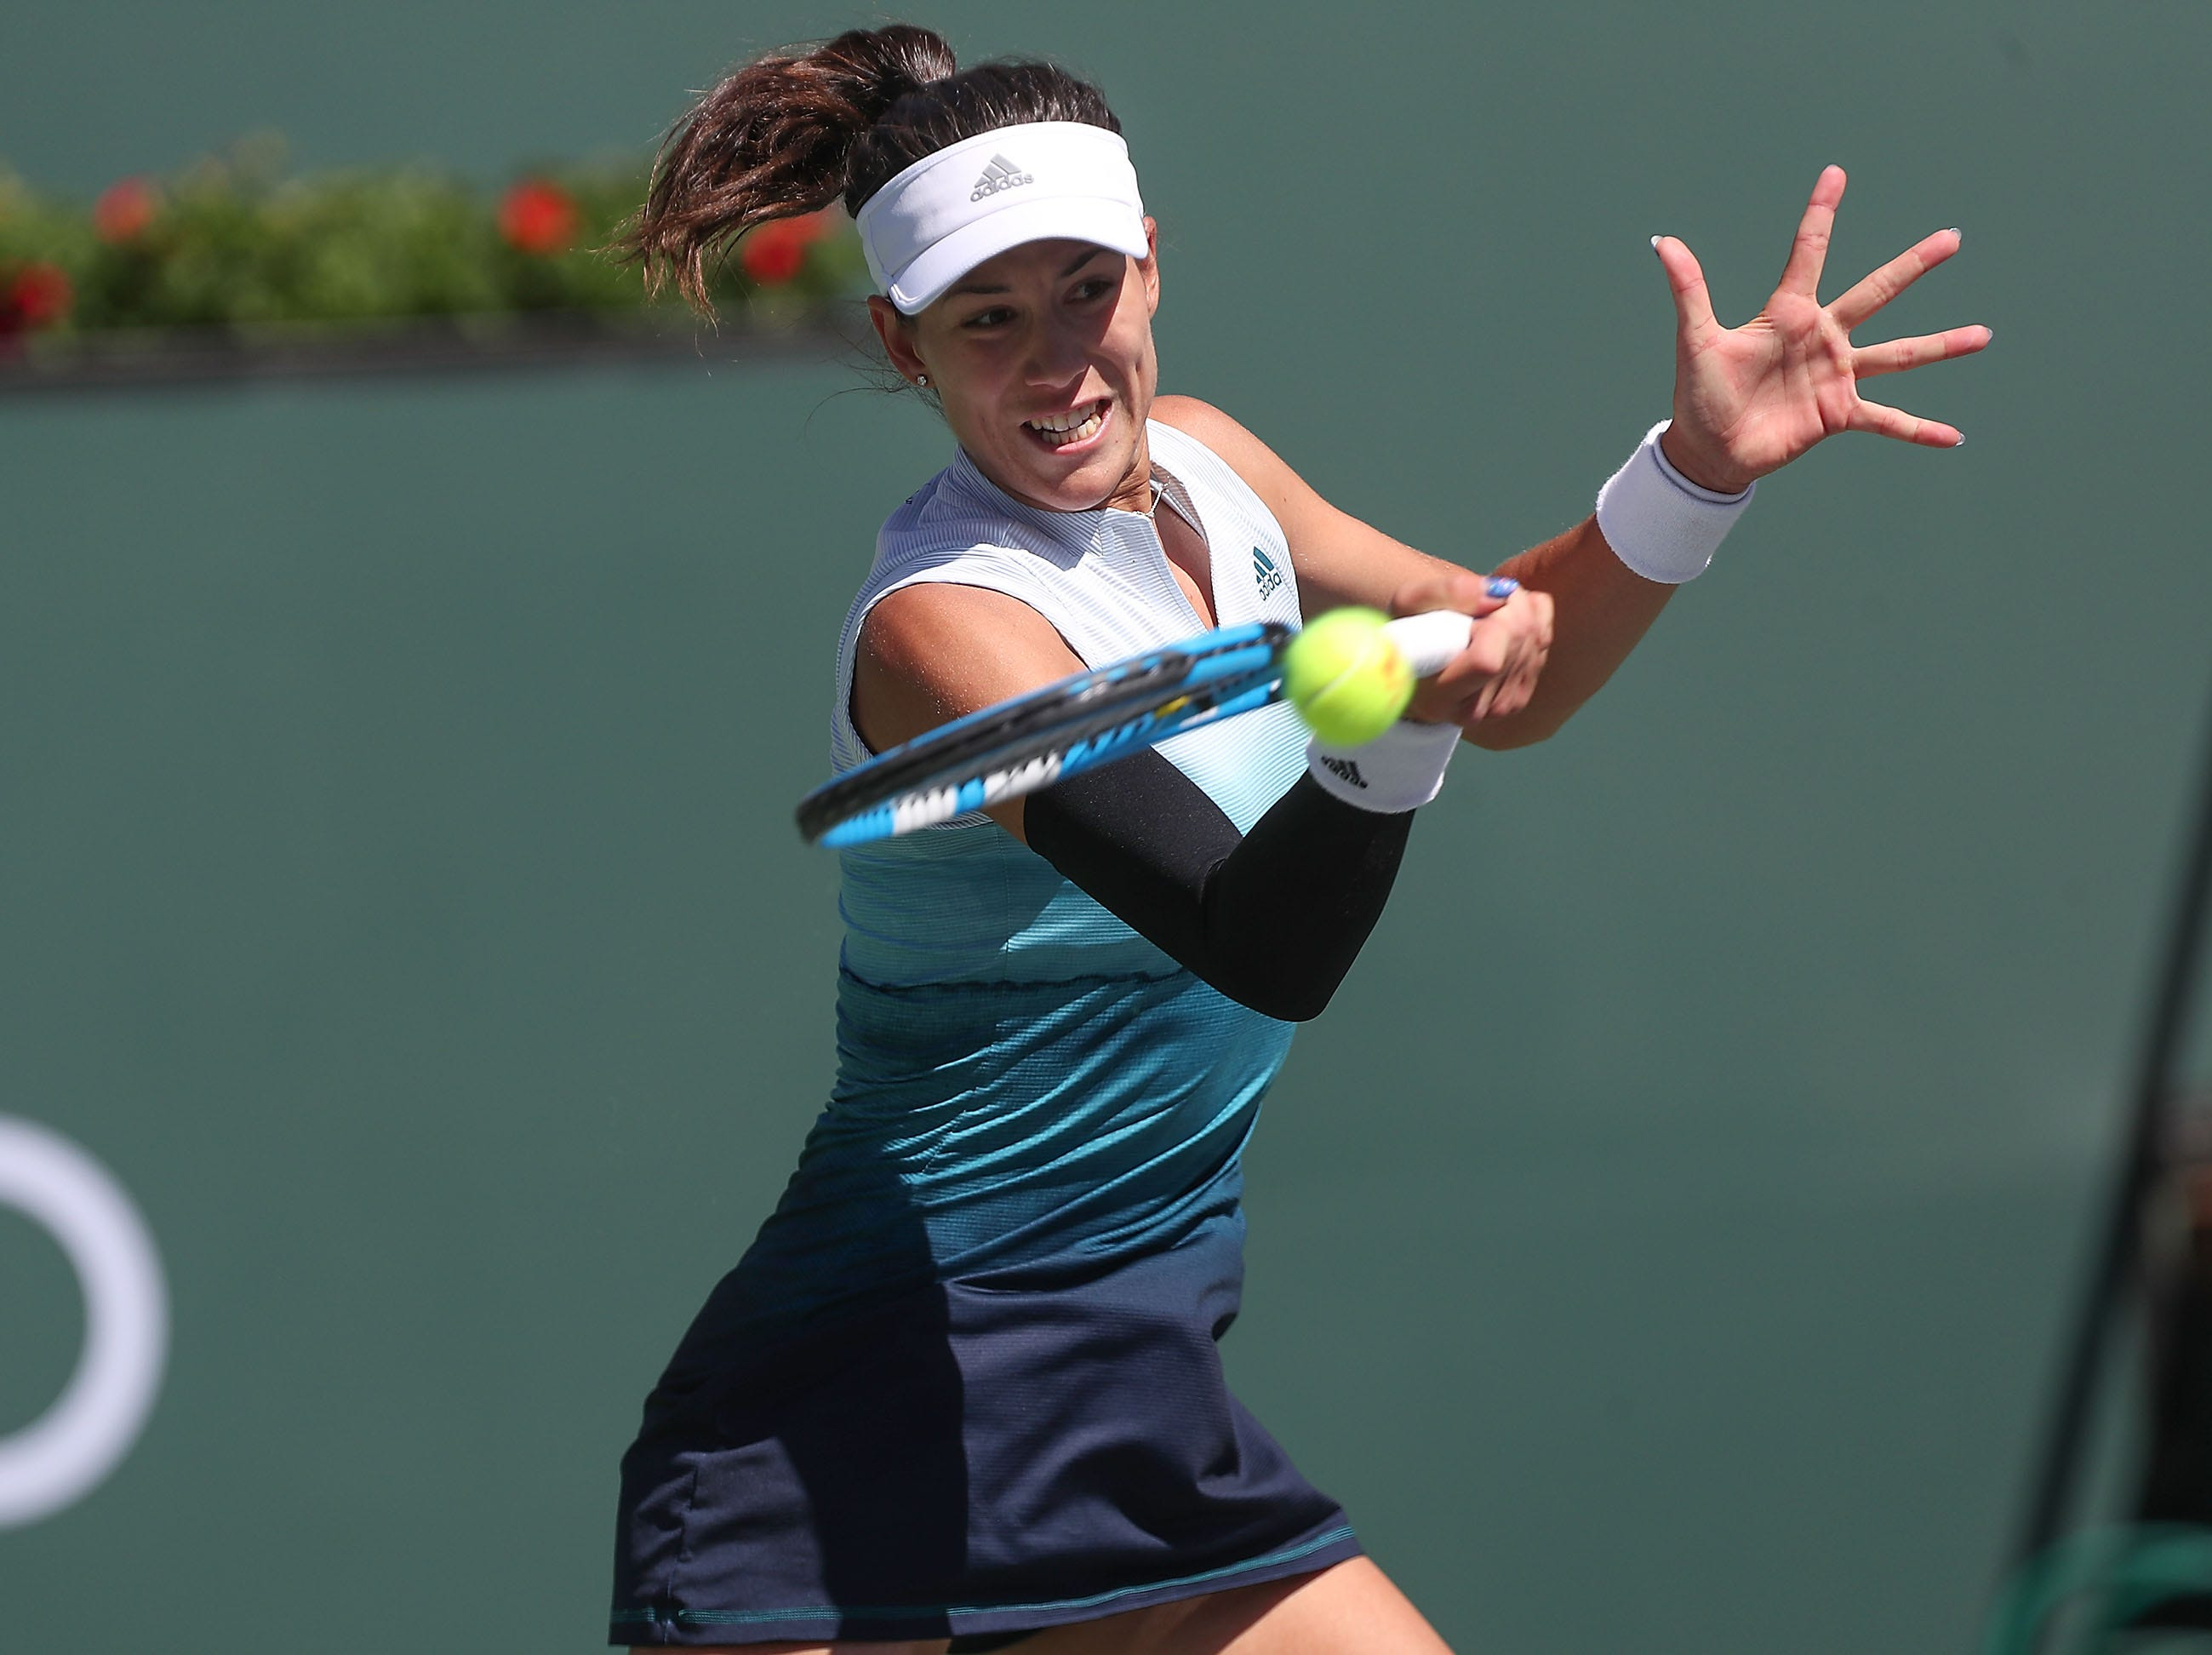 Garbine Muguruza hits a shot during her loss to Bianca Andreescu at the BNP Paribas Open in Indian Wells, March 13, 2019.